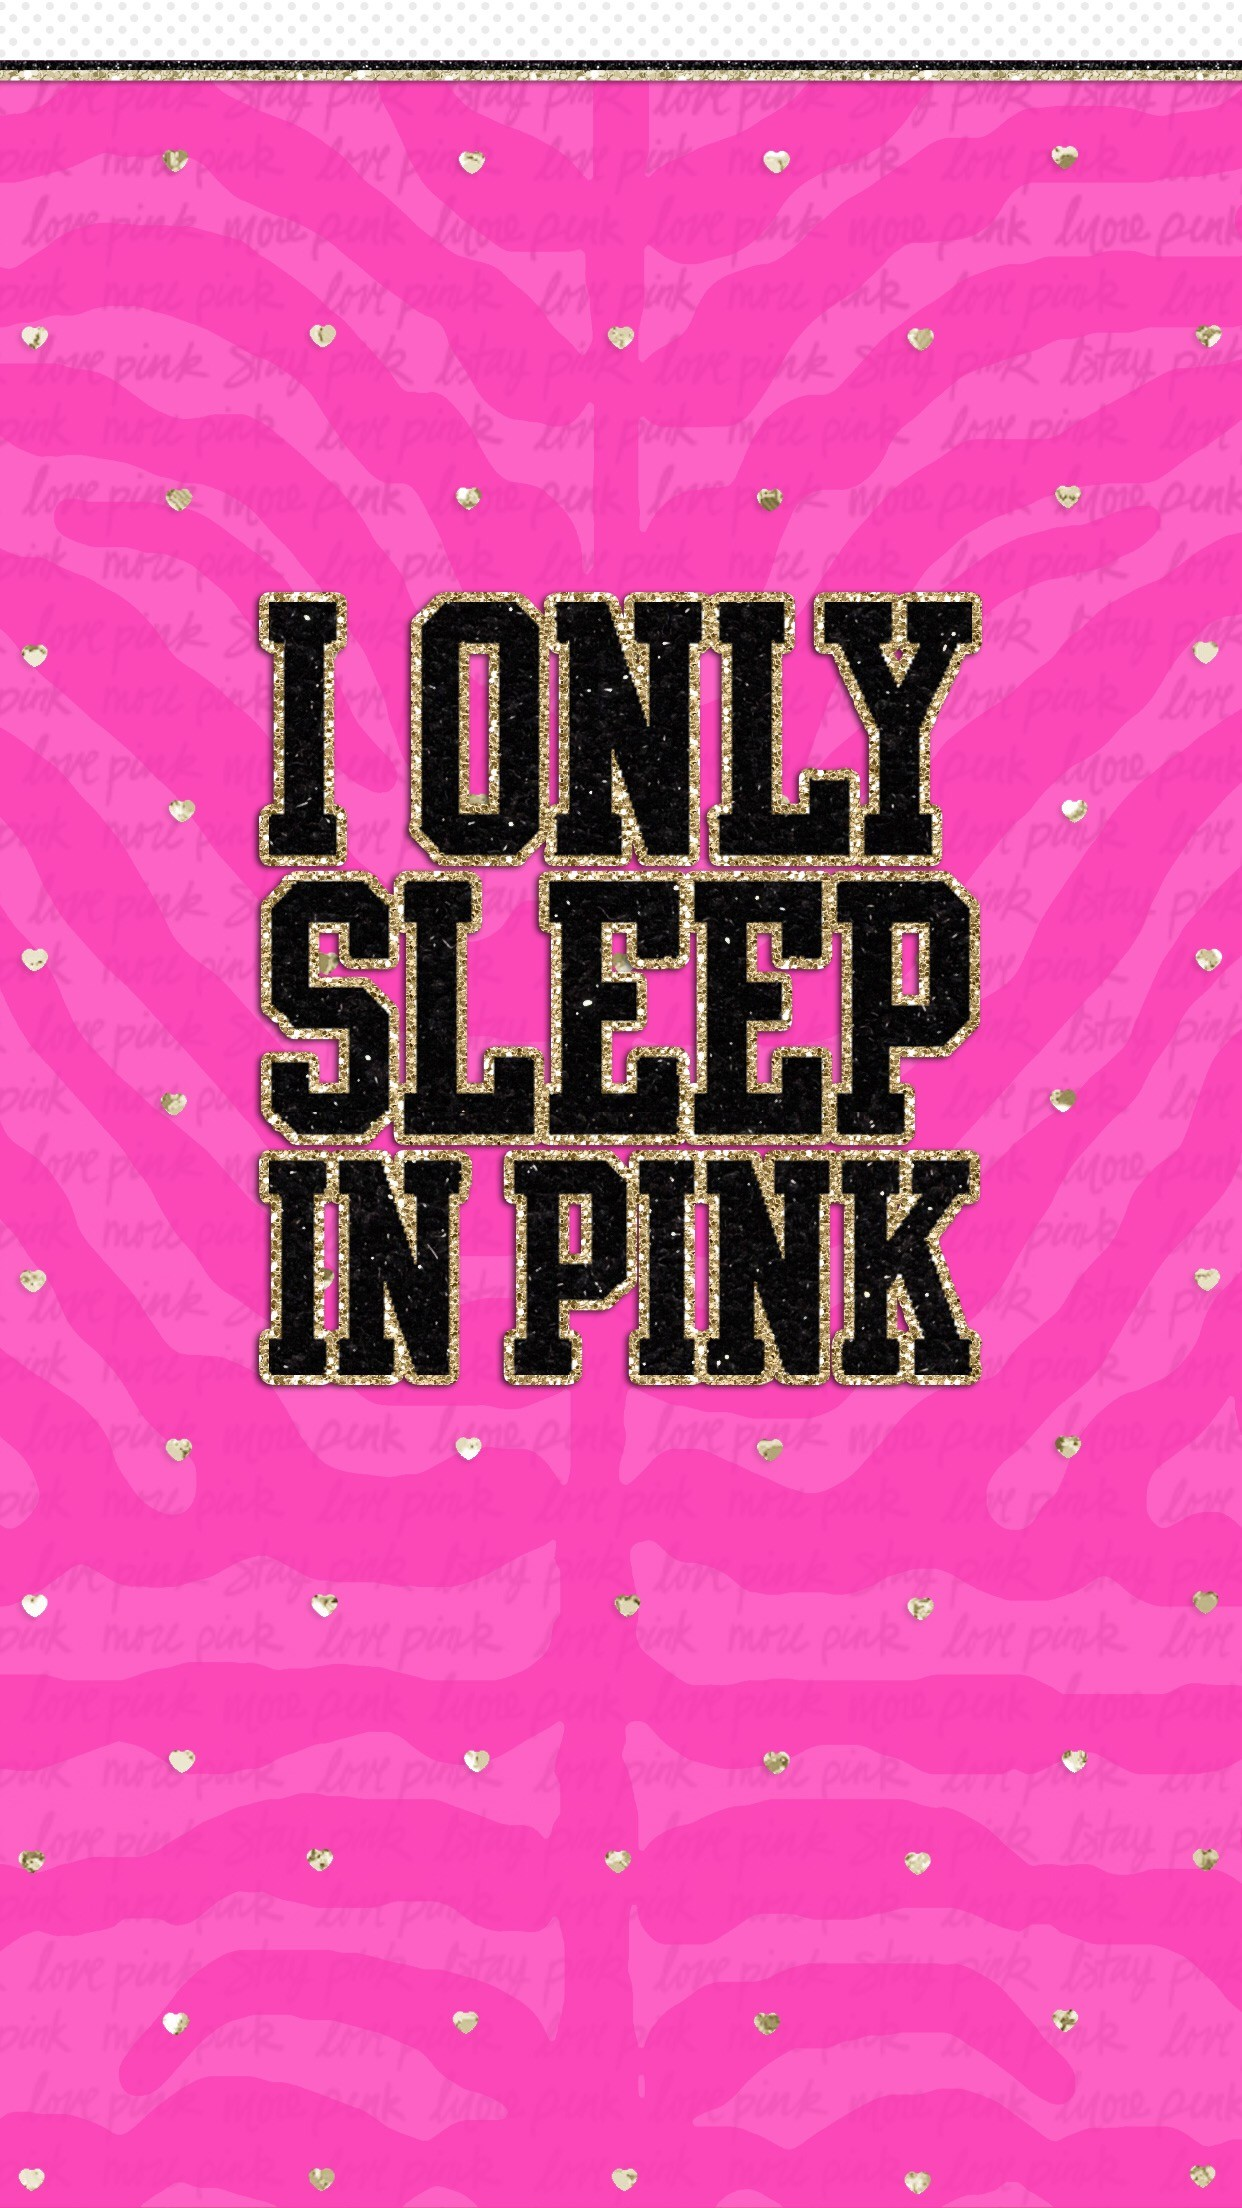 Iphone 2, Vintage Wallpapers, Phone Wallpapers, Pink Wallpaper, Pink  Nation, Victoria's Secret, Hello Kitty, Humor, Screens